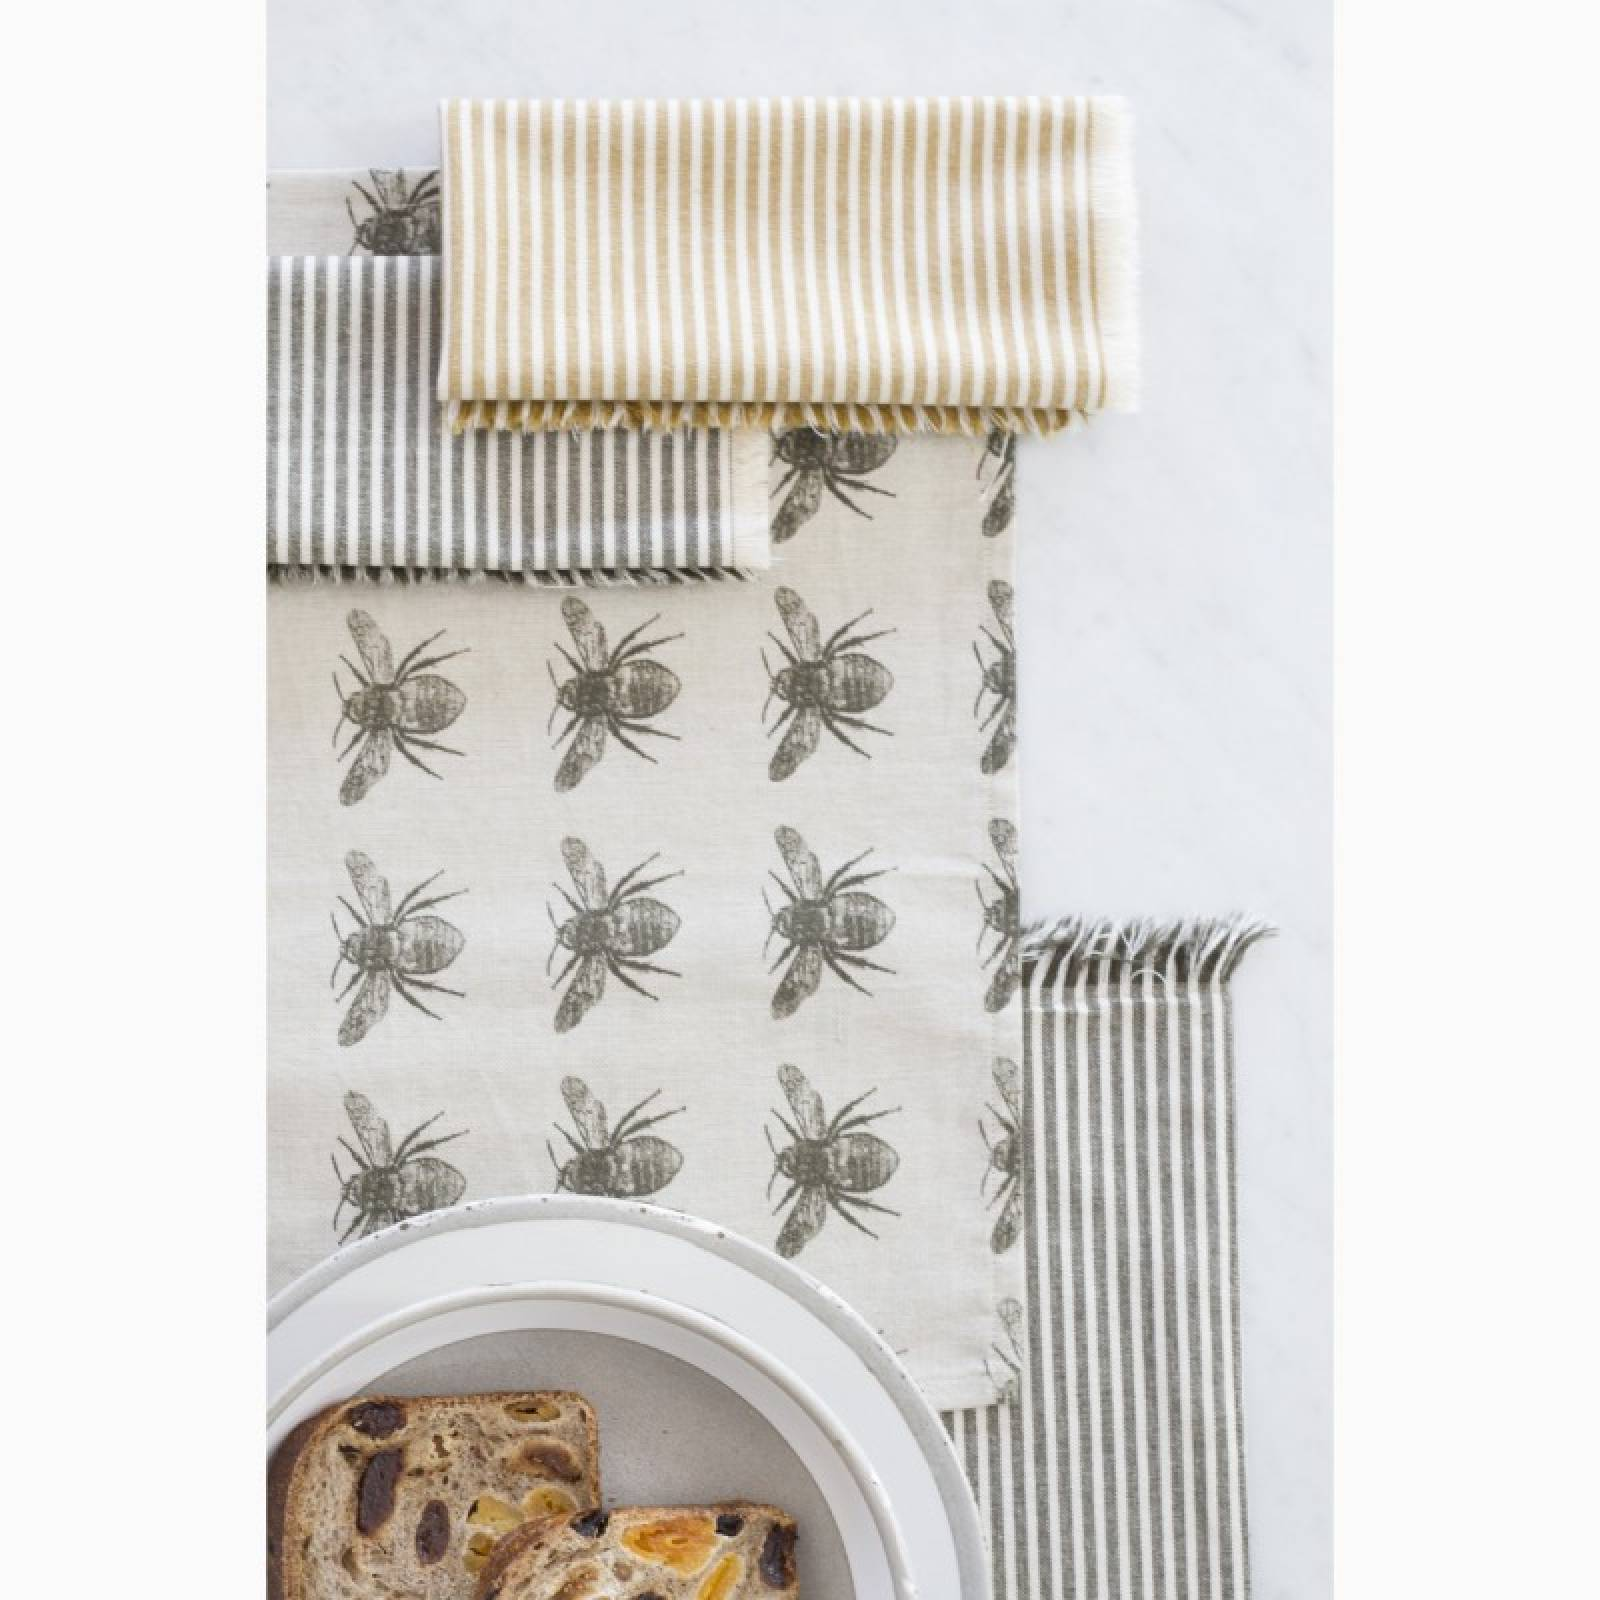 Set Of 4 Recycled Honey Bee Napkins In Olive Green thumbnails